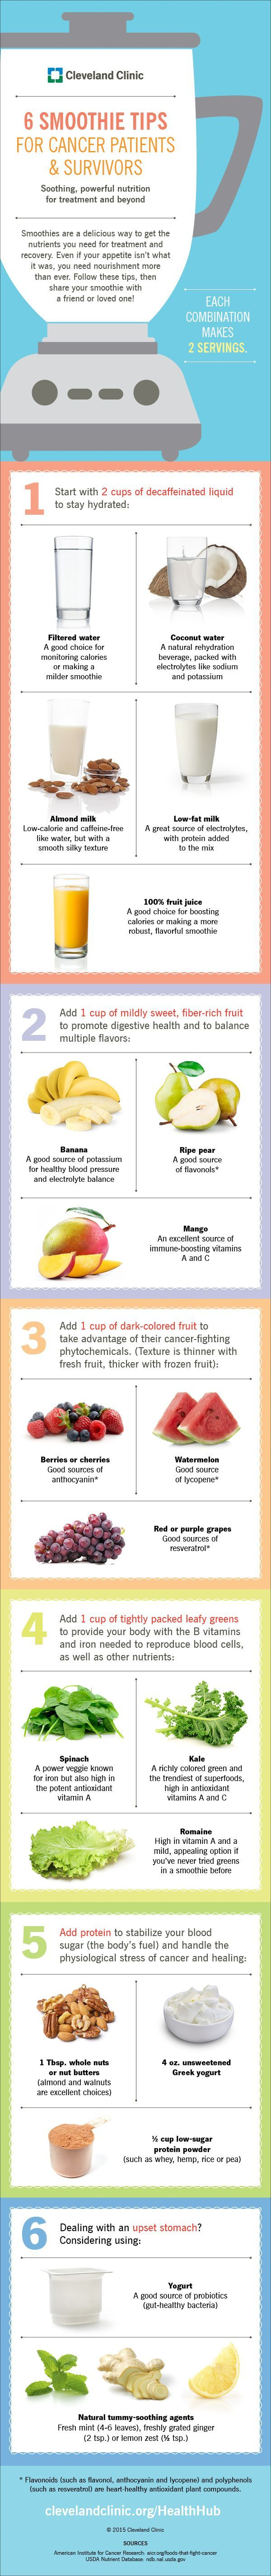 6 Smoothie Tips for Cancer Patients and Survivors #infographic #Smoothie #Cancer #Health